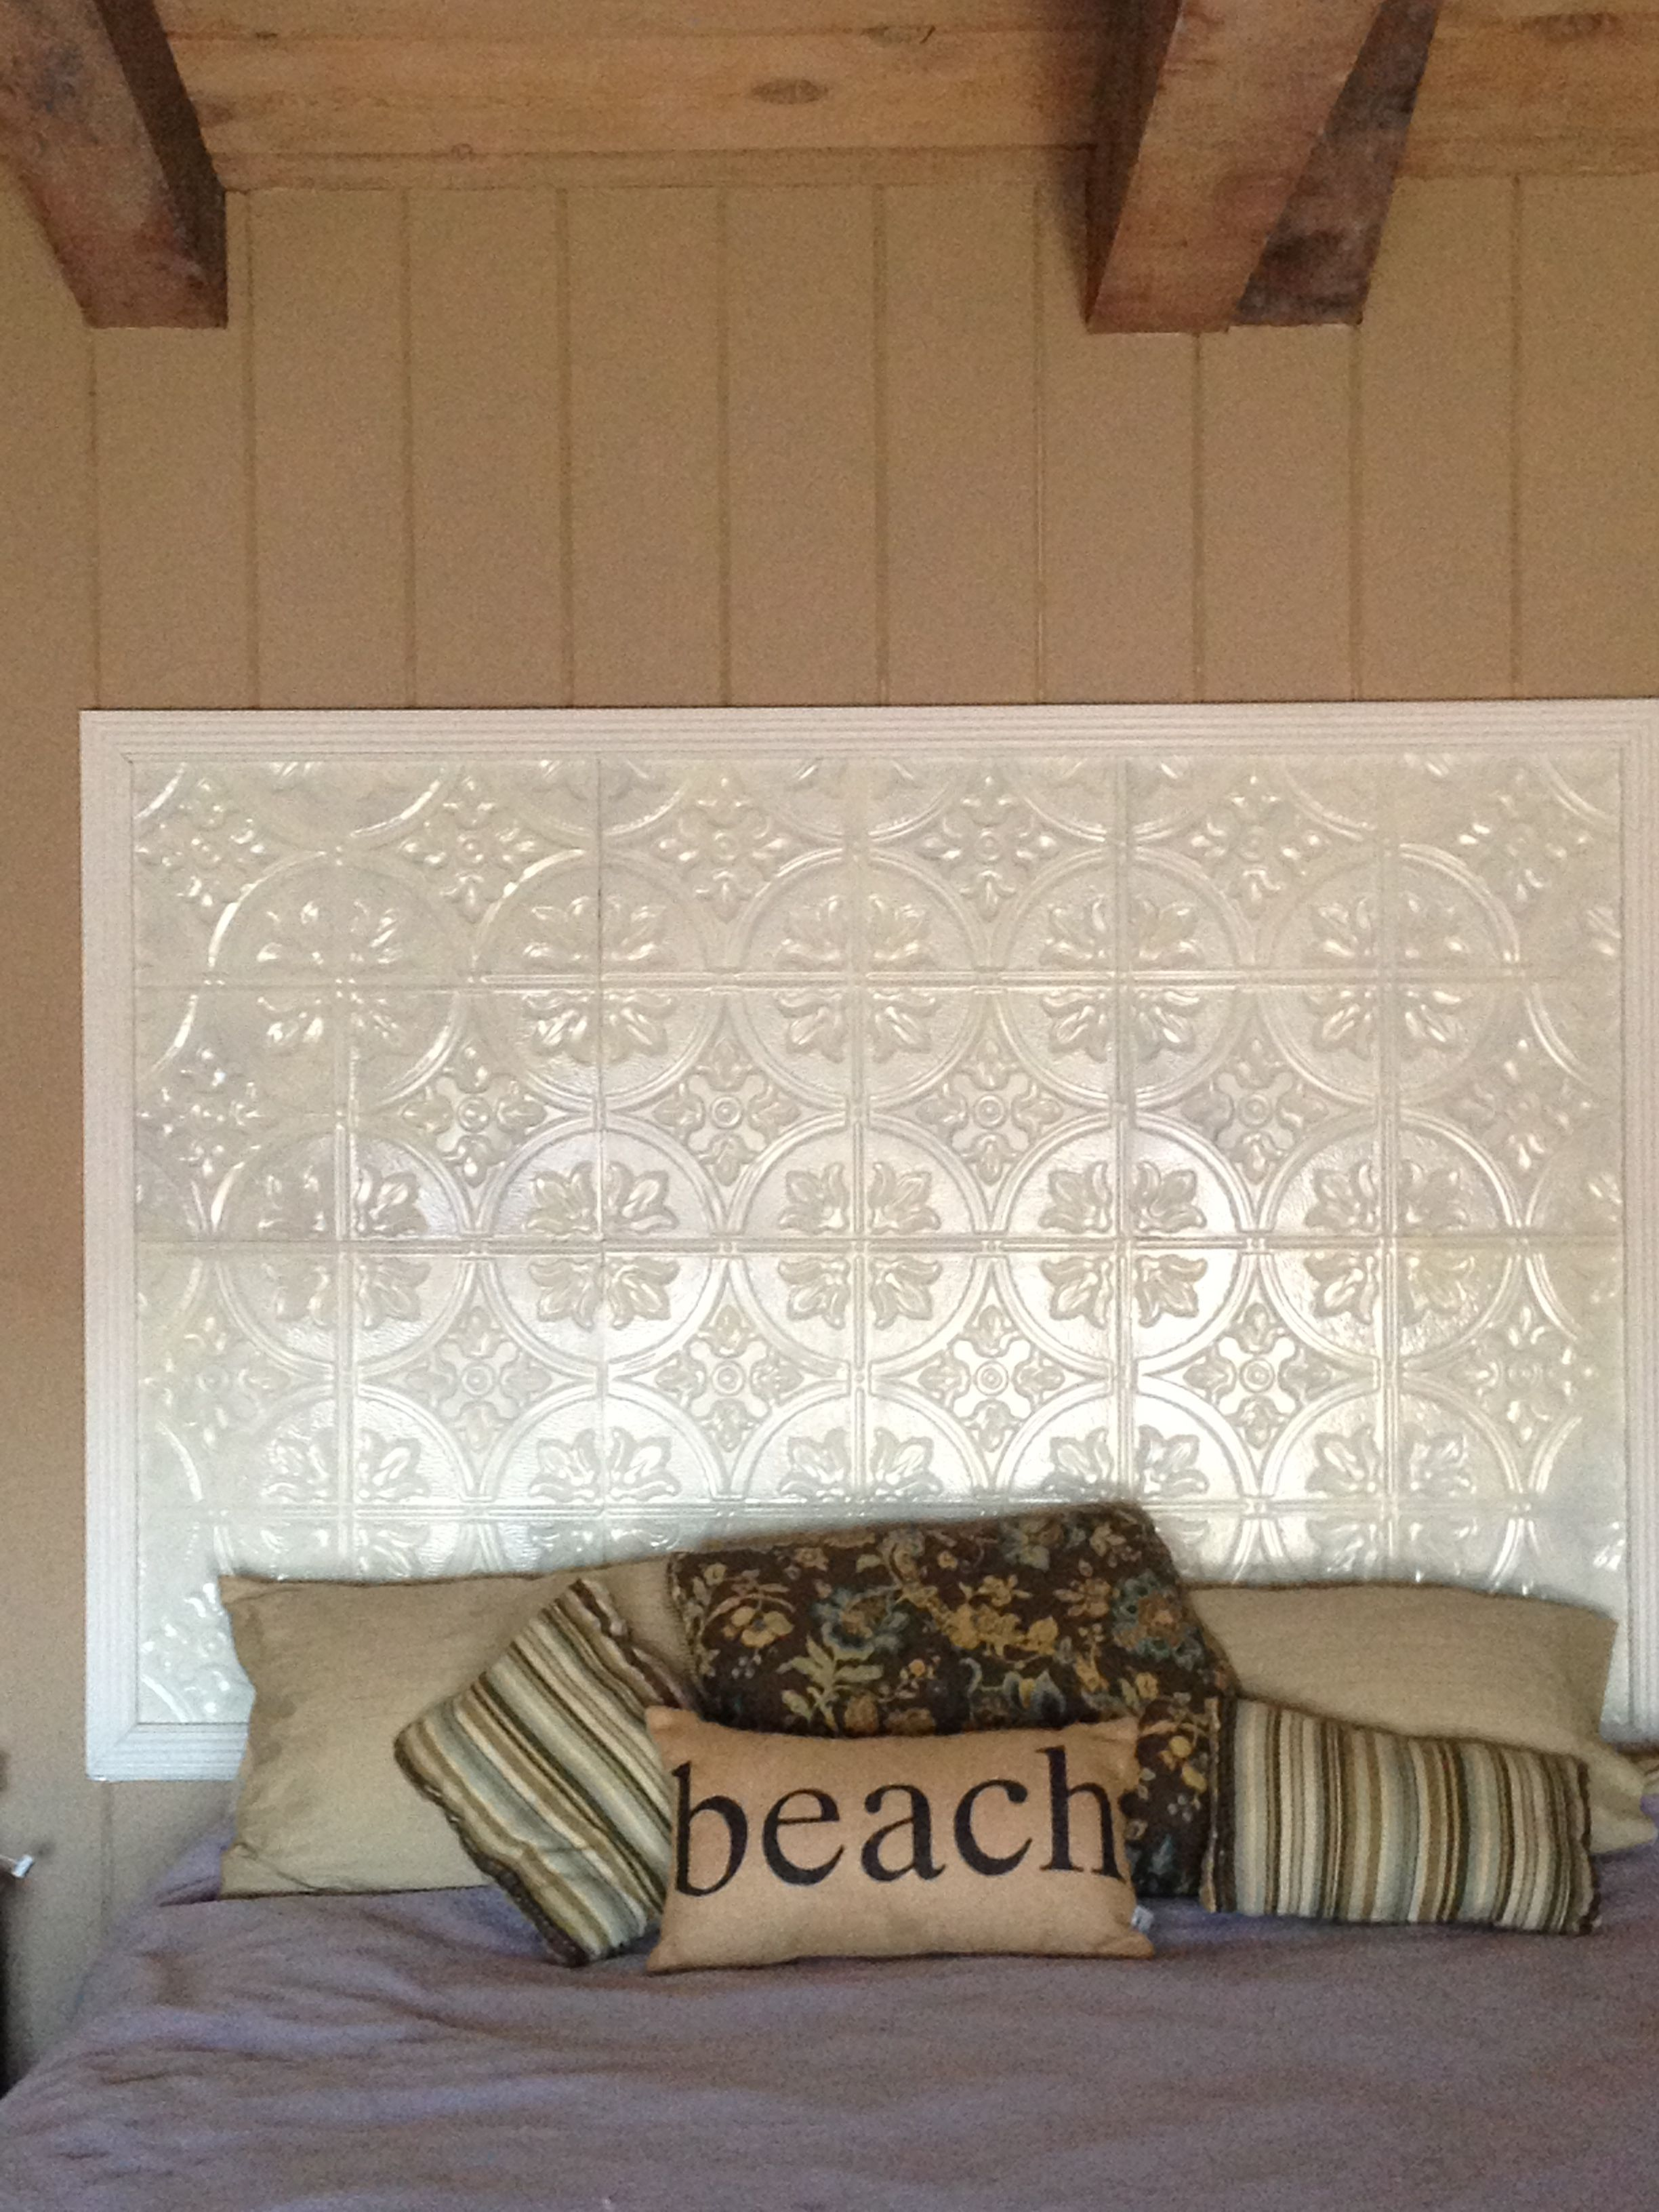 My headboard made from tin ceiling tiles i spray painted white my headboard made from tin ceiling tiles i spray painted white and then framed dailygadgetfo Image collections